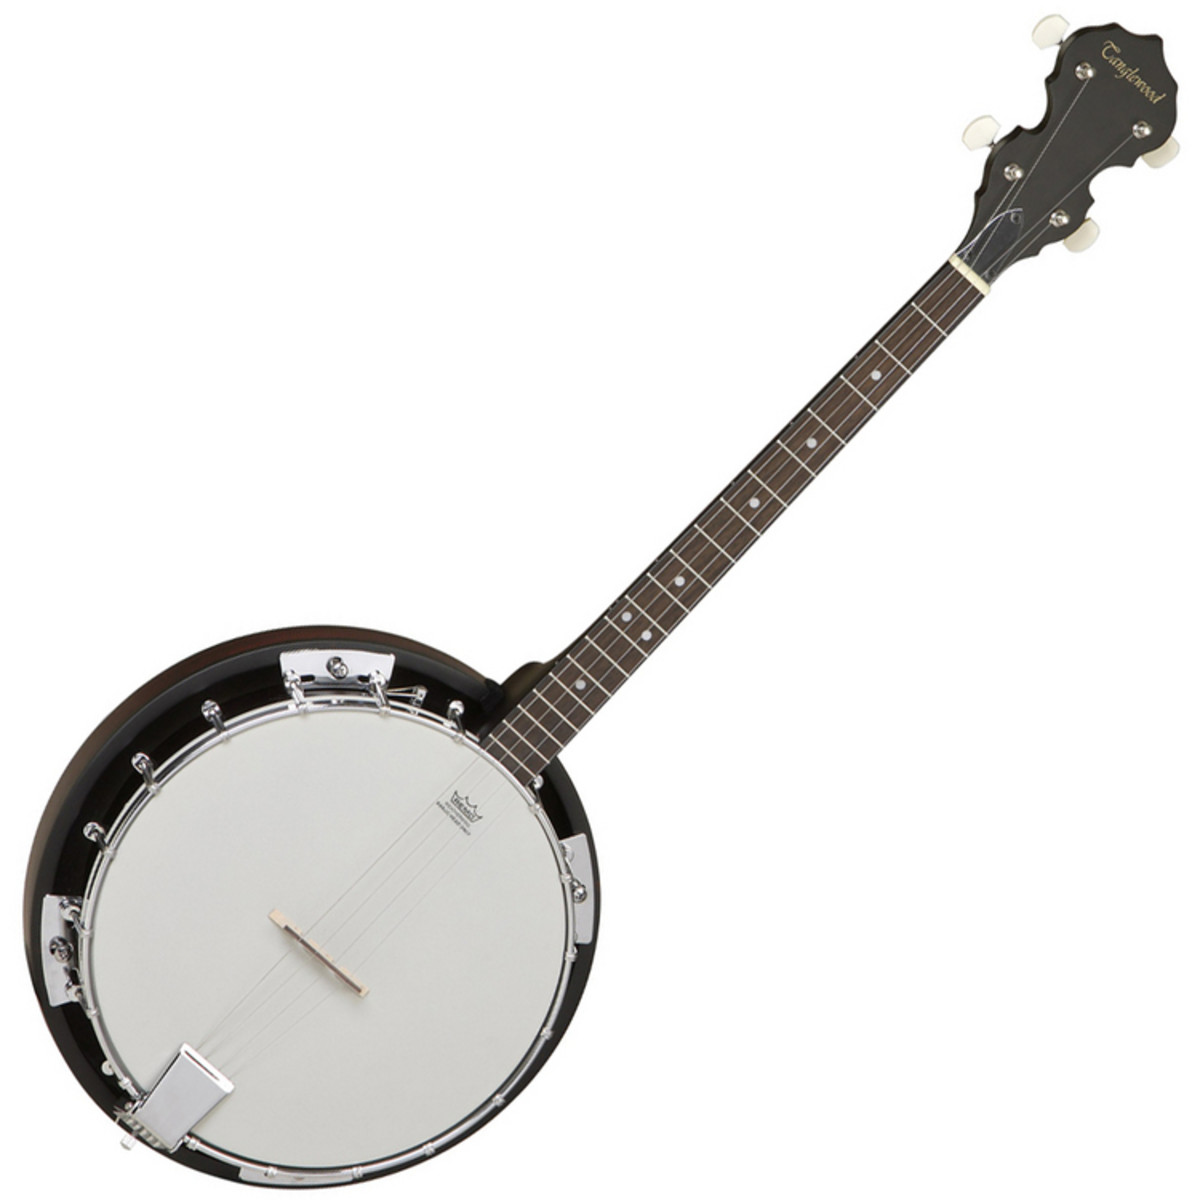 Tanglewood Standard 4 String Tenor Banjo At